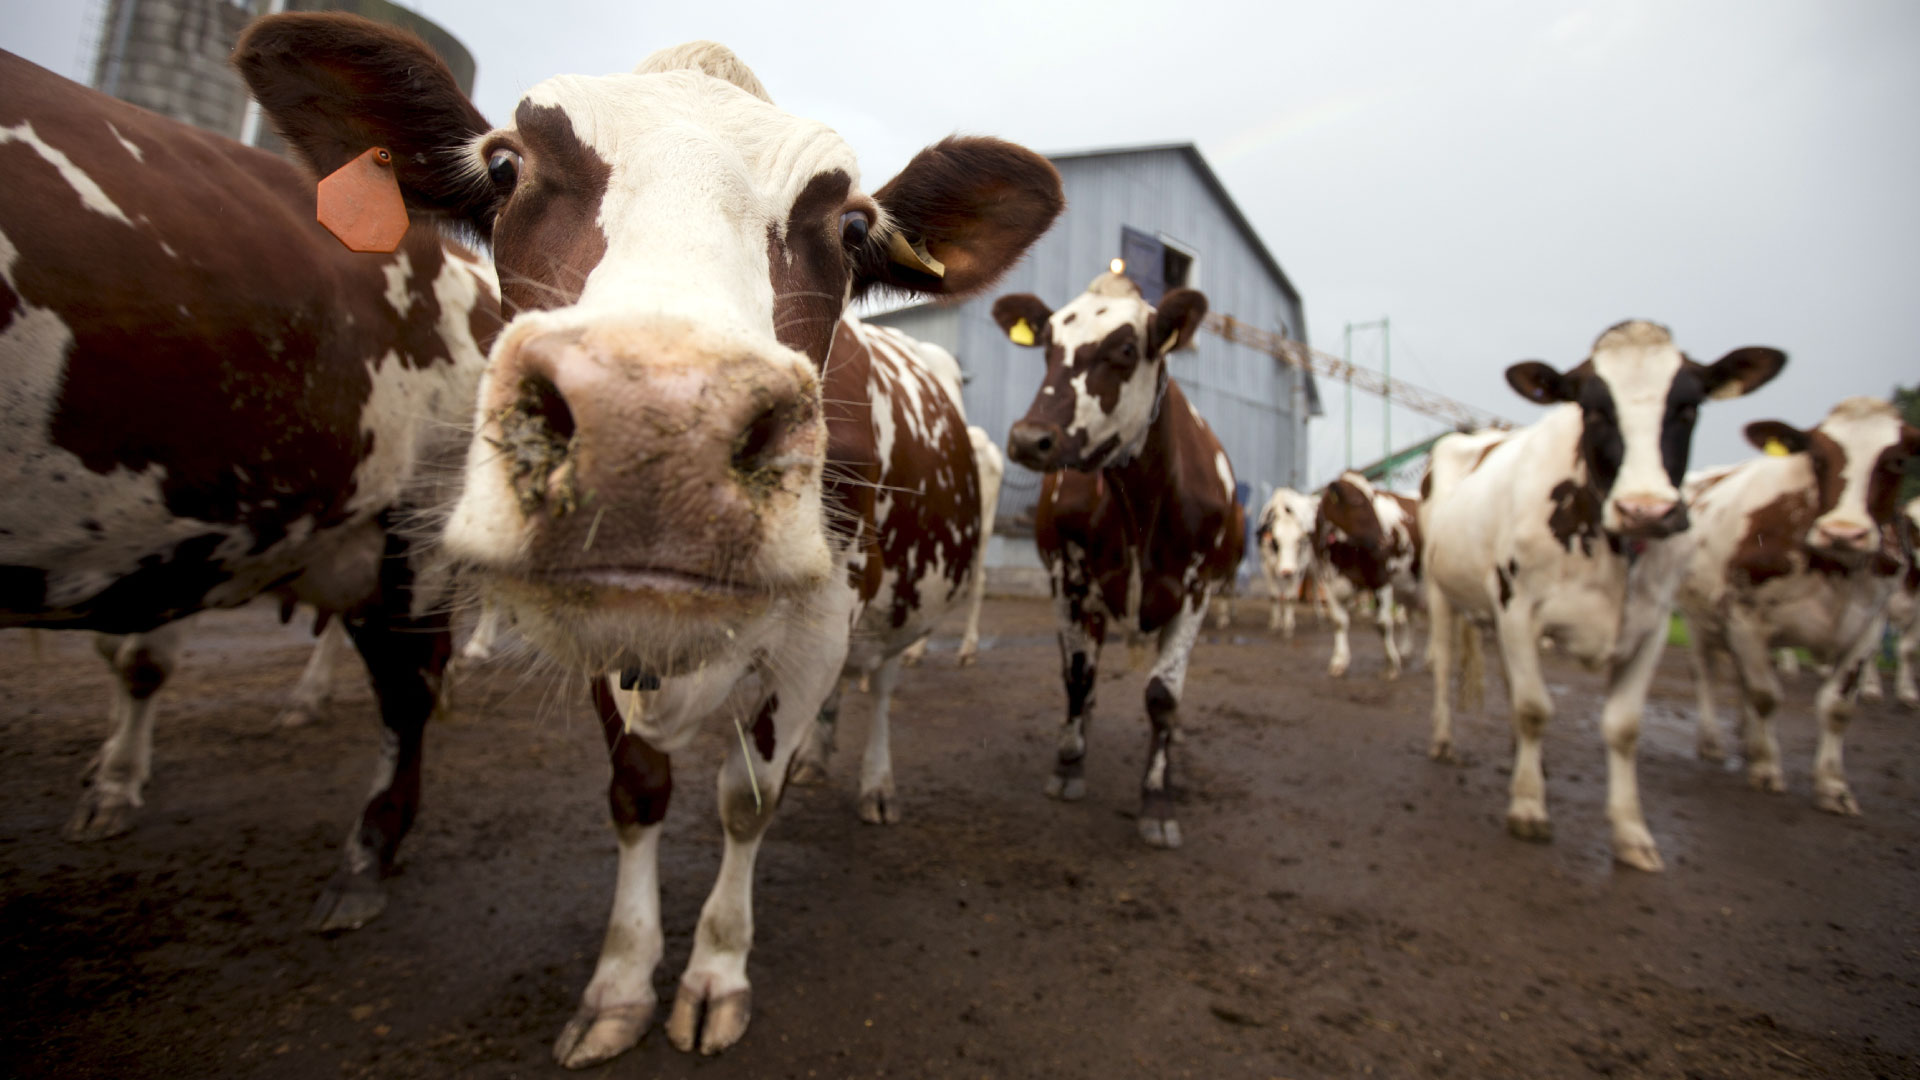 A close up of a brown spotted cow's face while it stands on muddy ground amongst other cows in front of a blue barn.